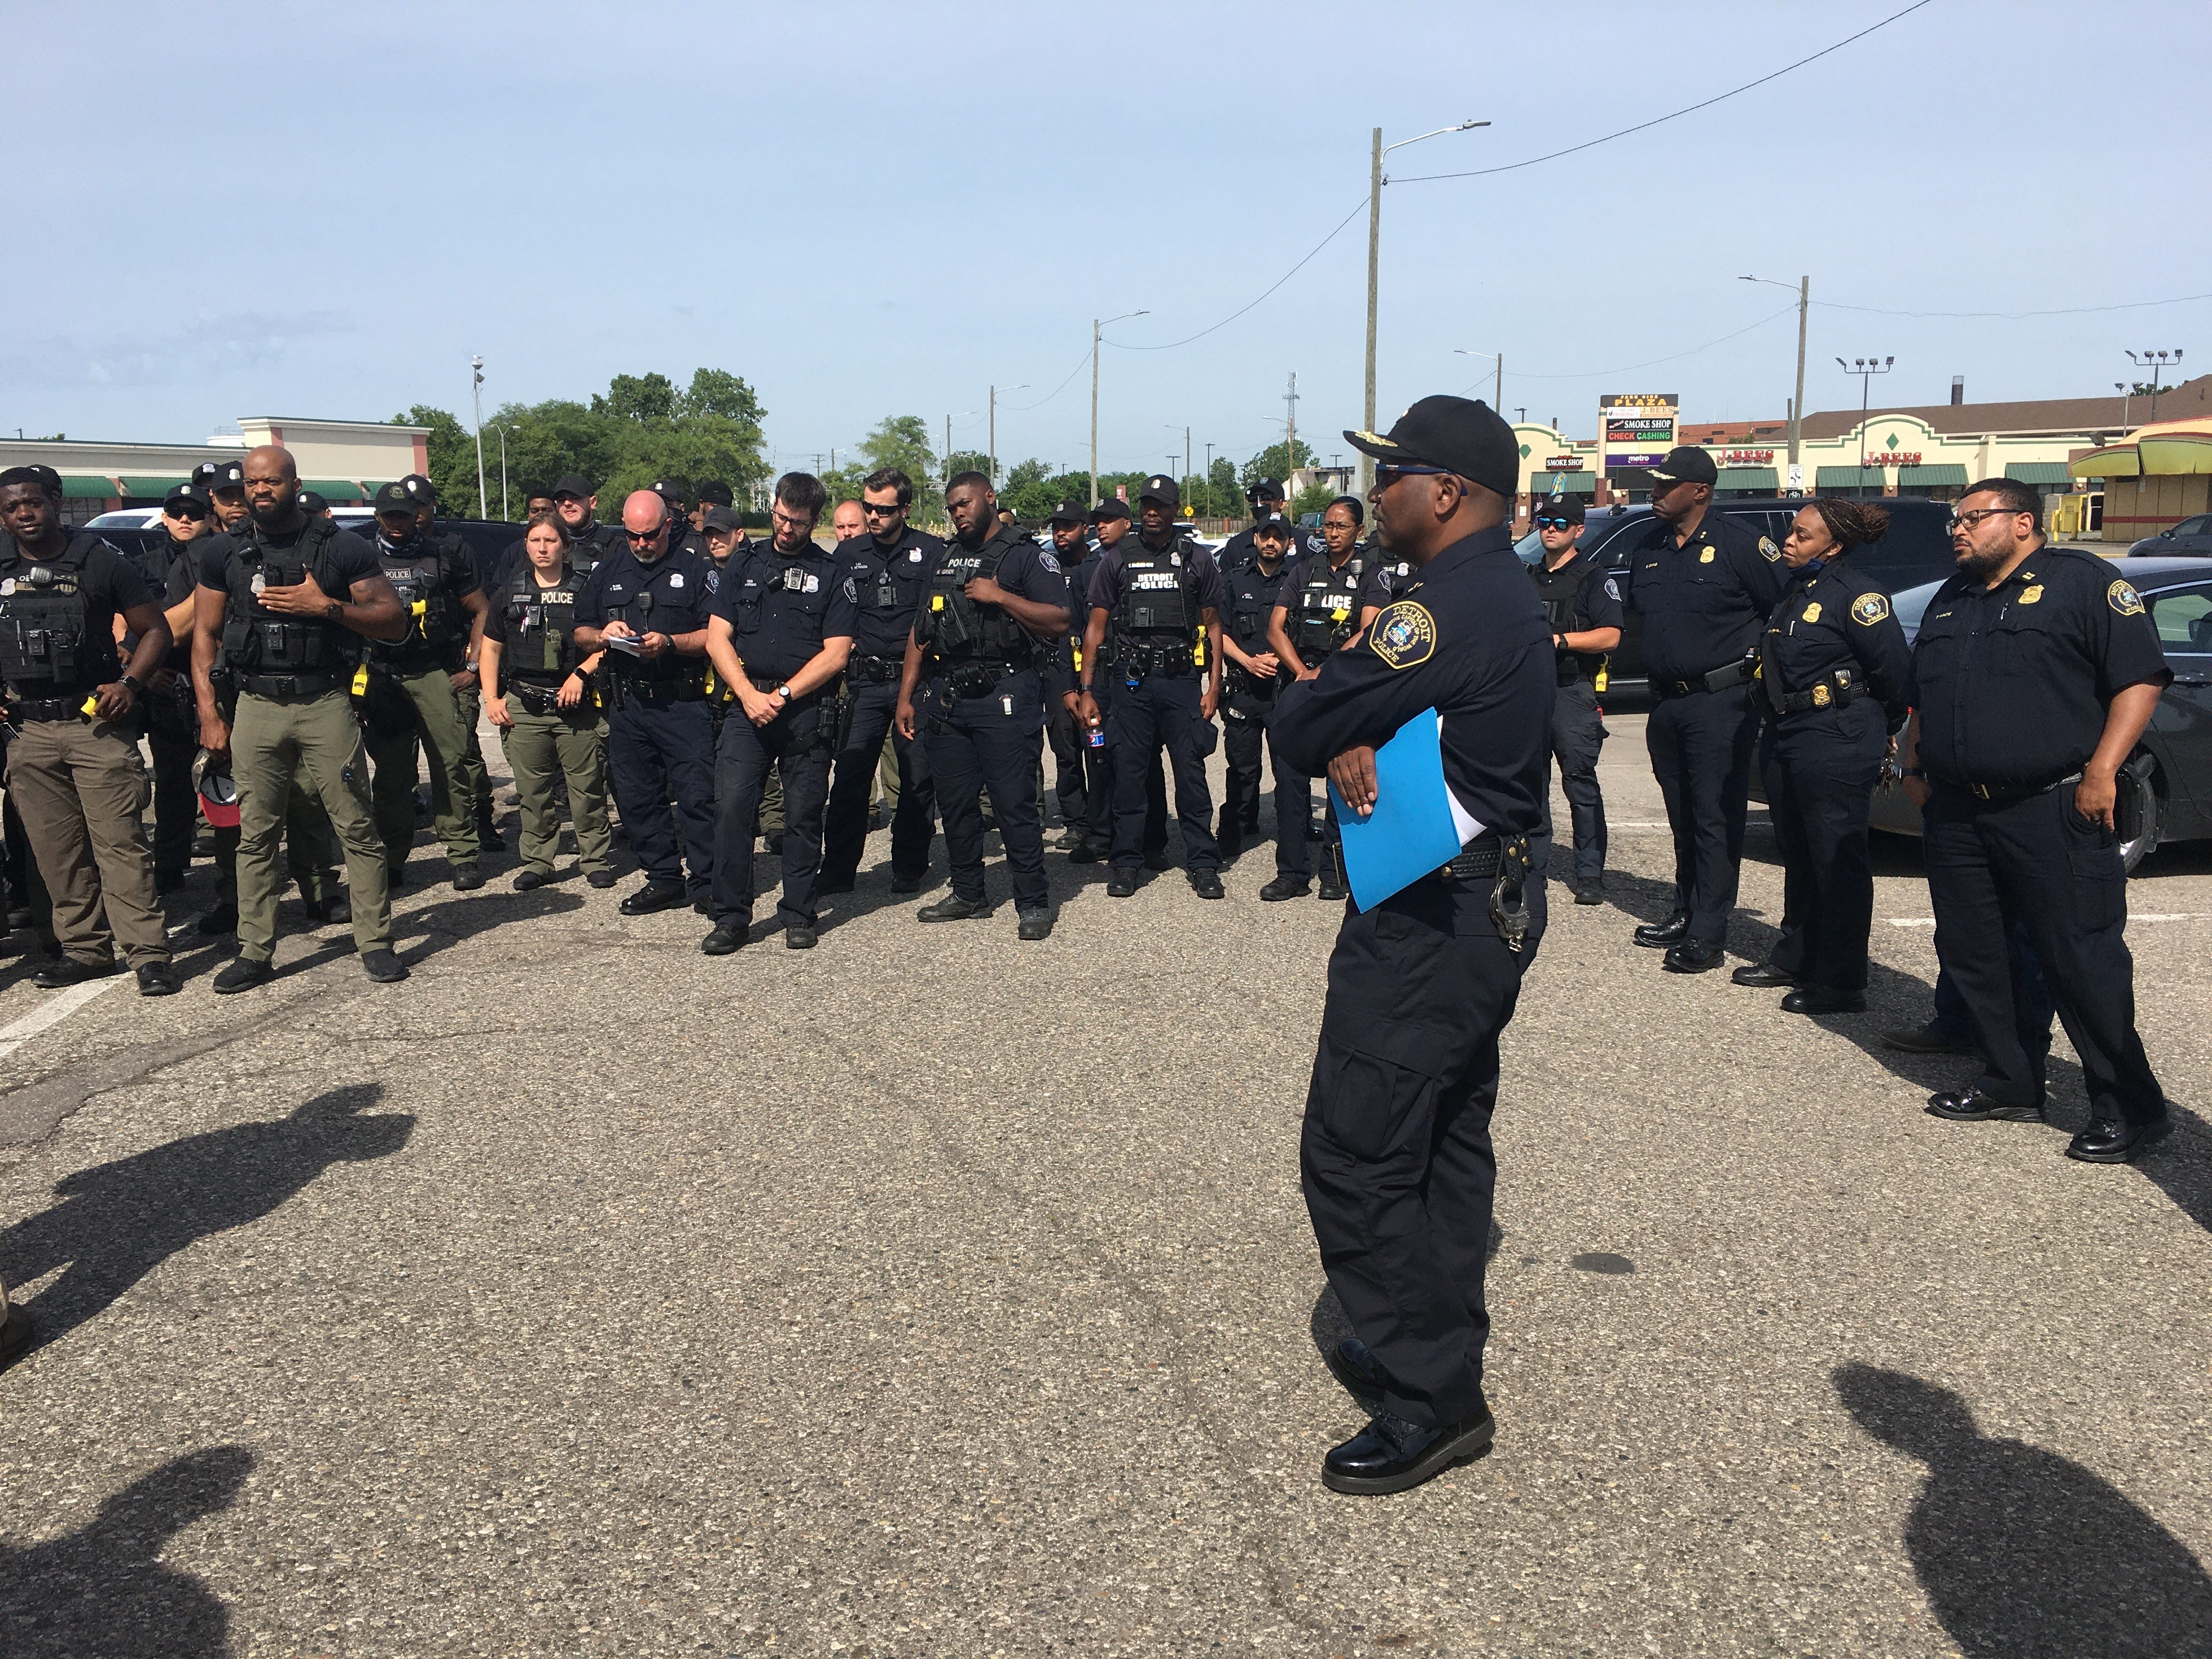 Detroit police launch 'Enough is Enough,' 2-day bid to restore order in neighborhoods